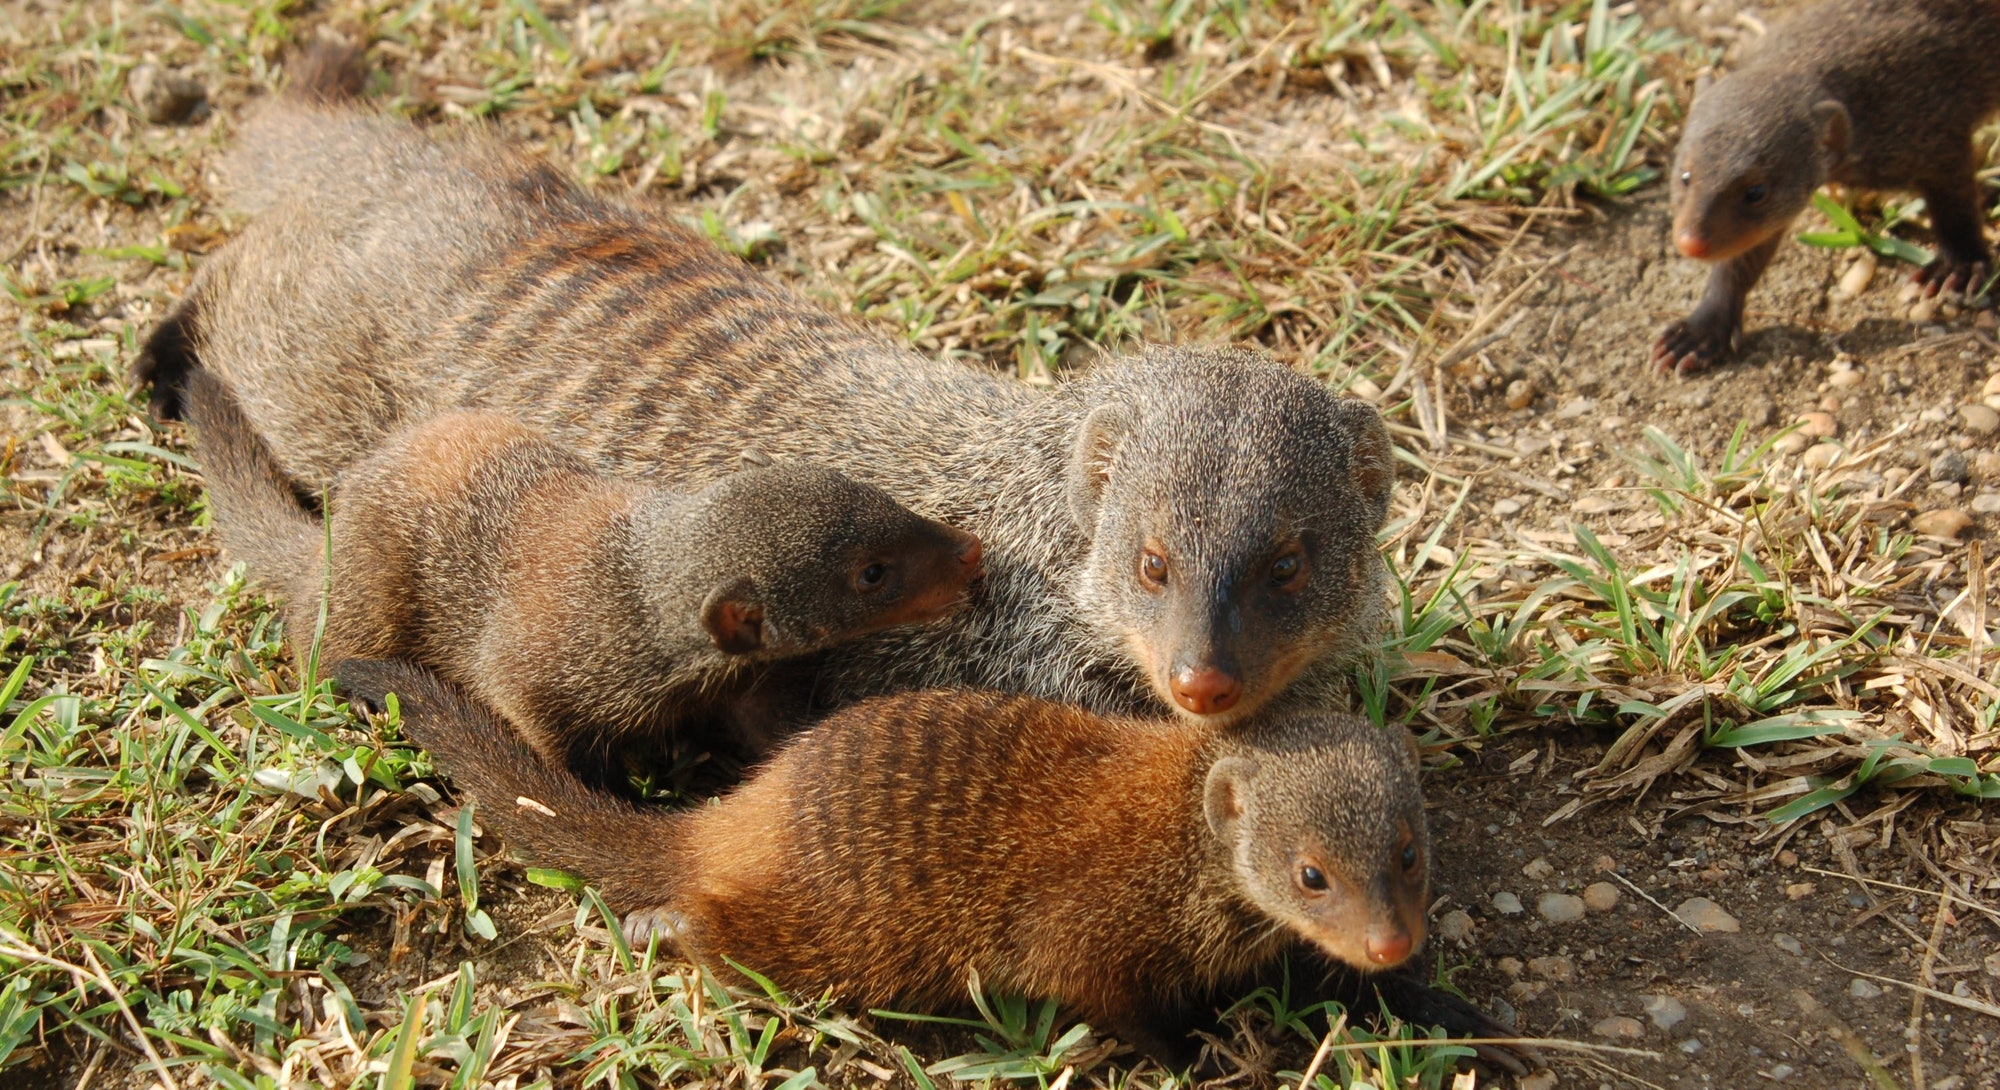 A mother mongoose sits with two babies